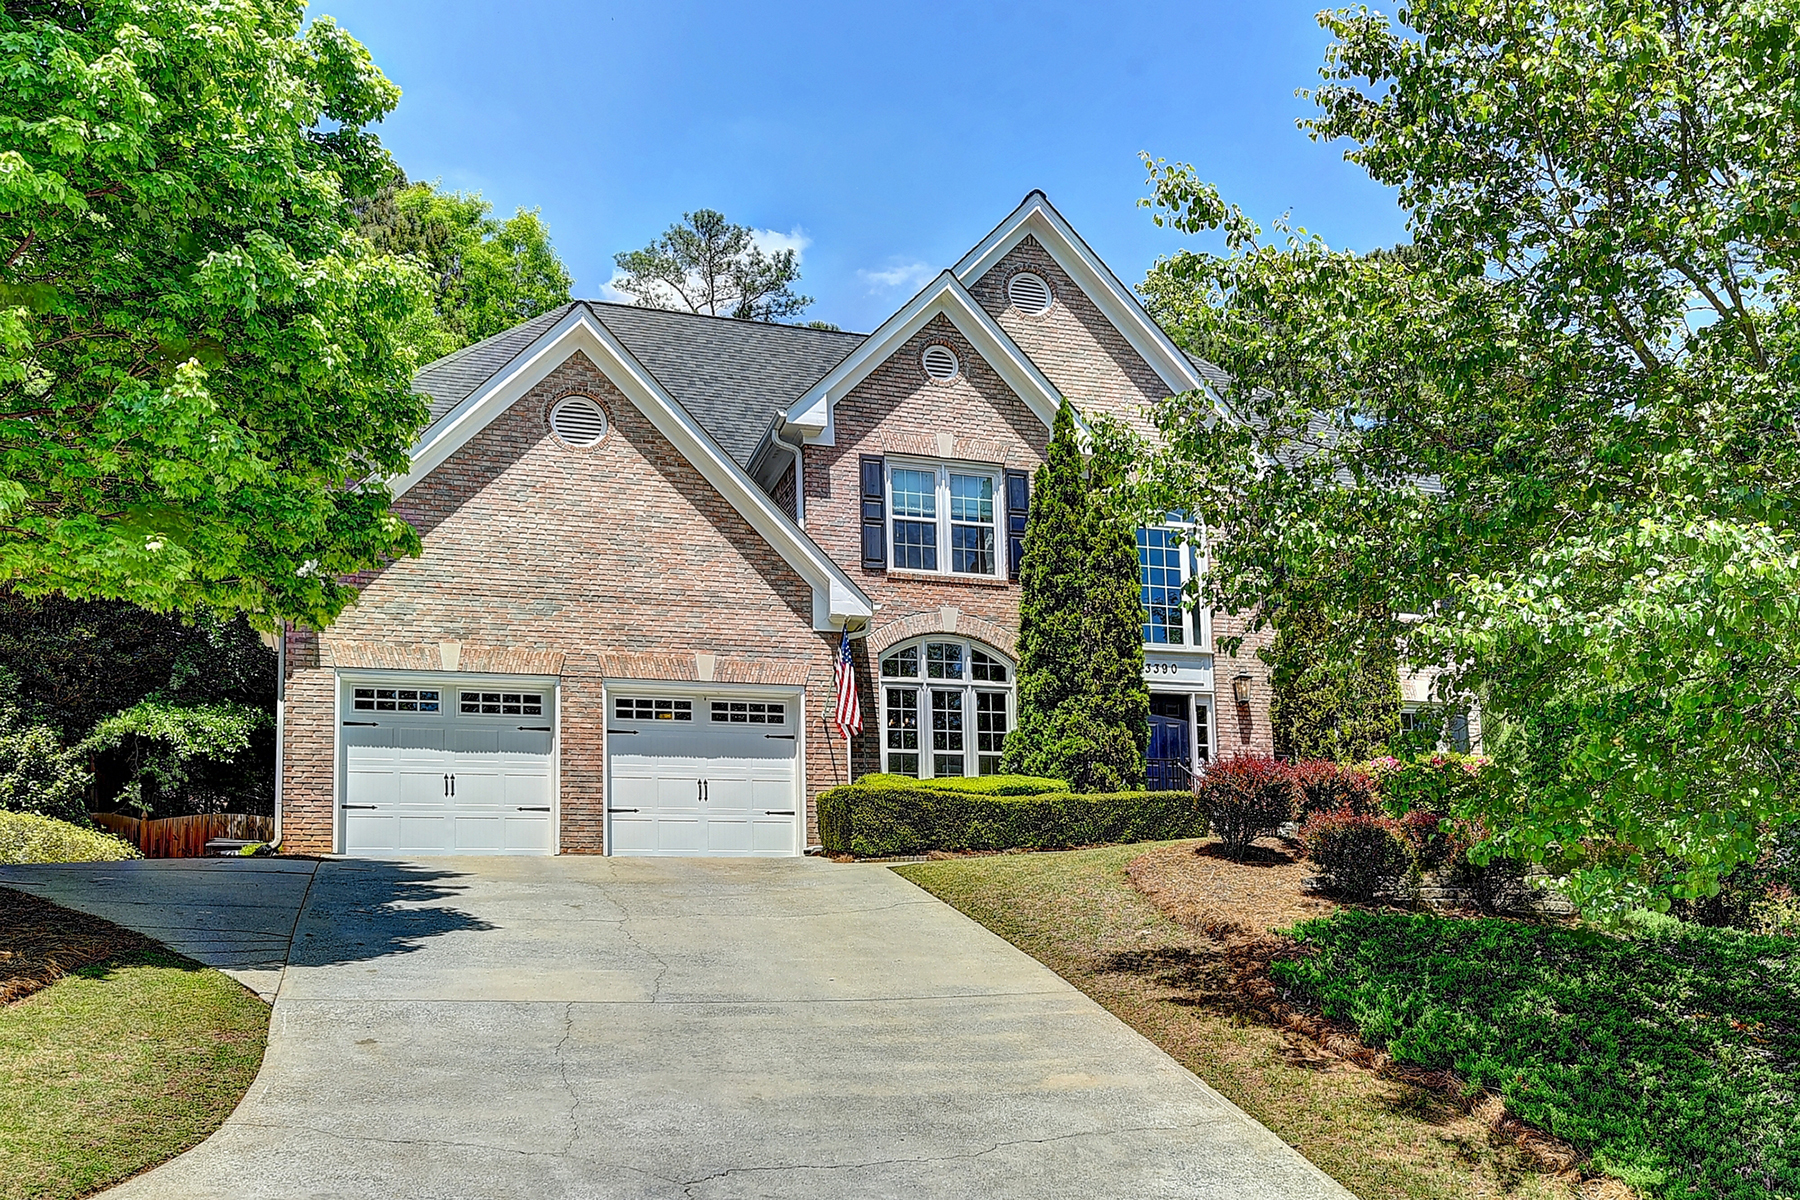 Single Family Home for Sale at Queensbury Renovation 3390 Marquess Moor Johns Creek, Georgia 30022 United States